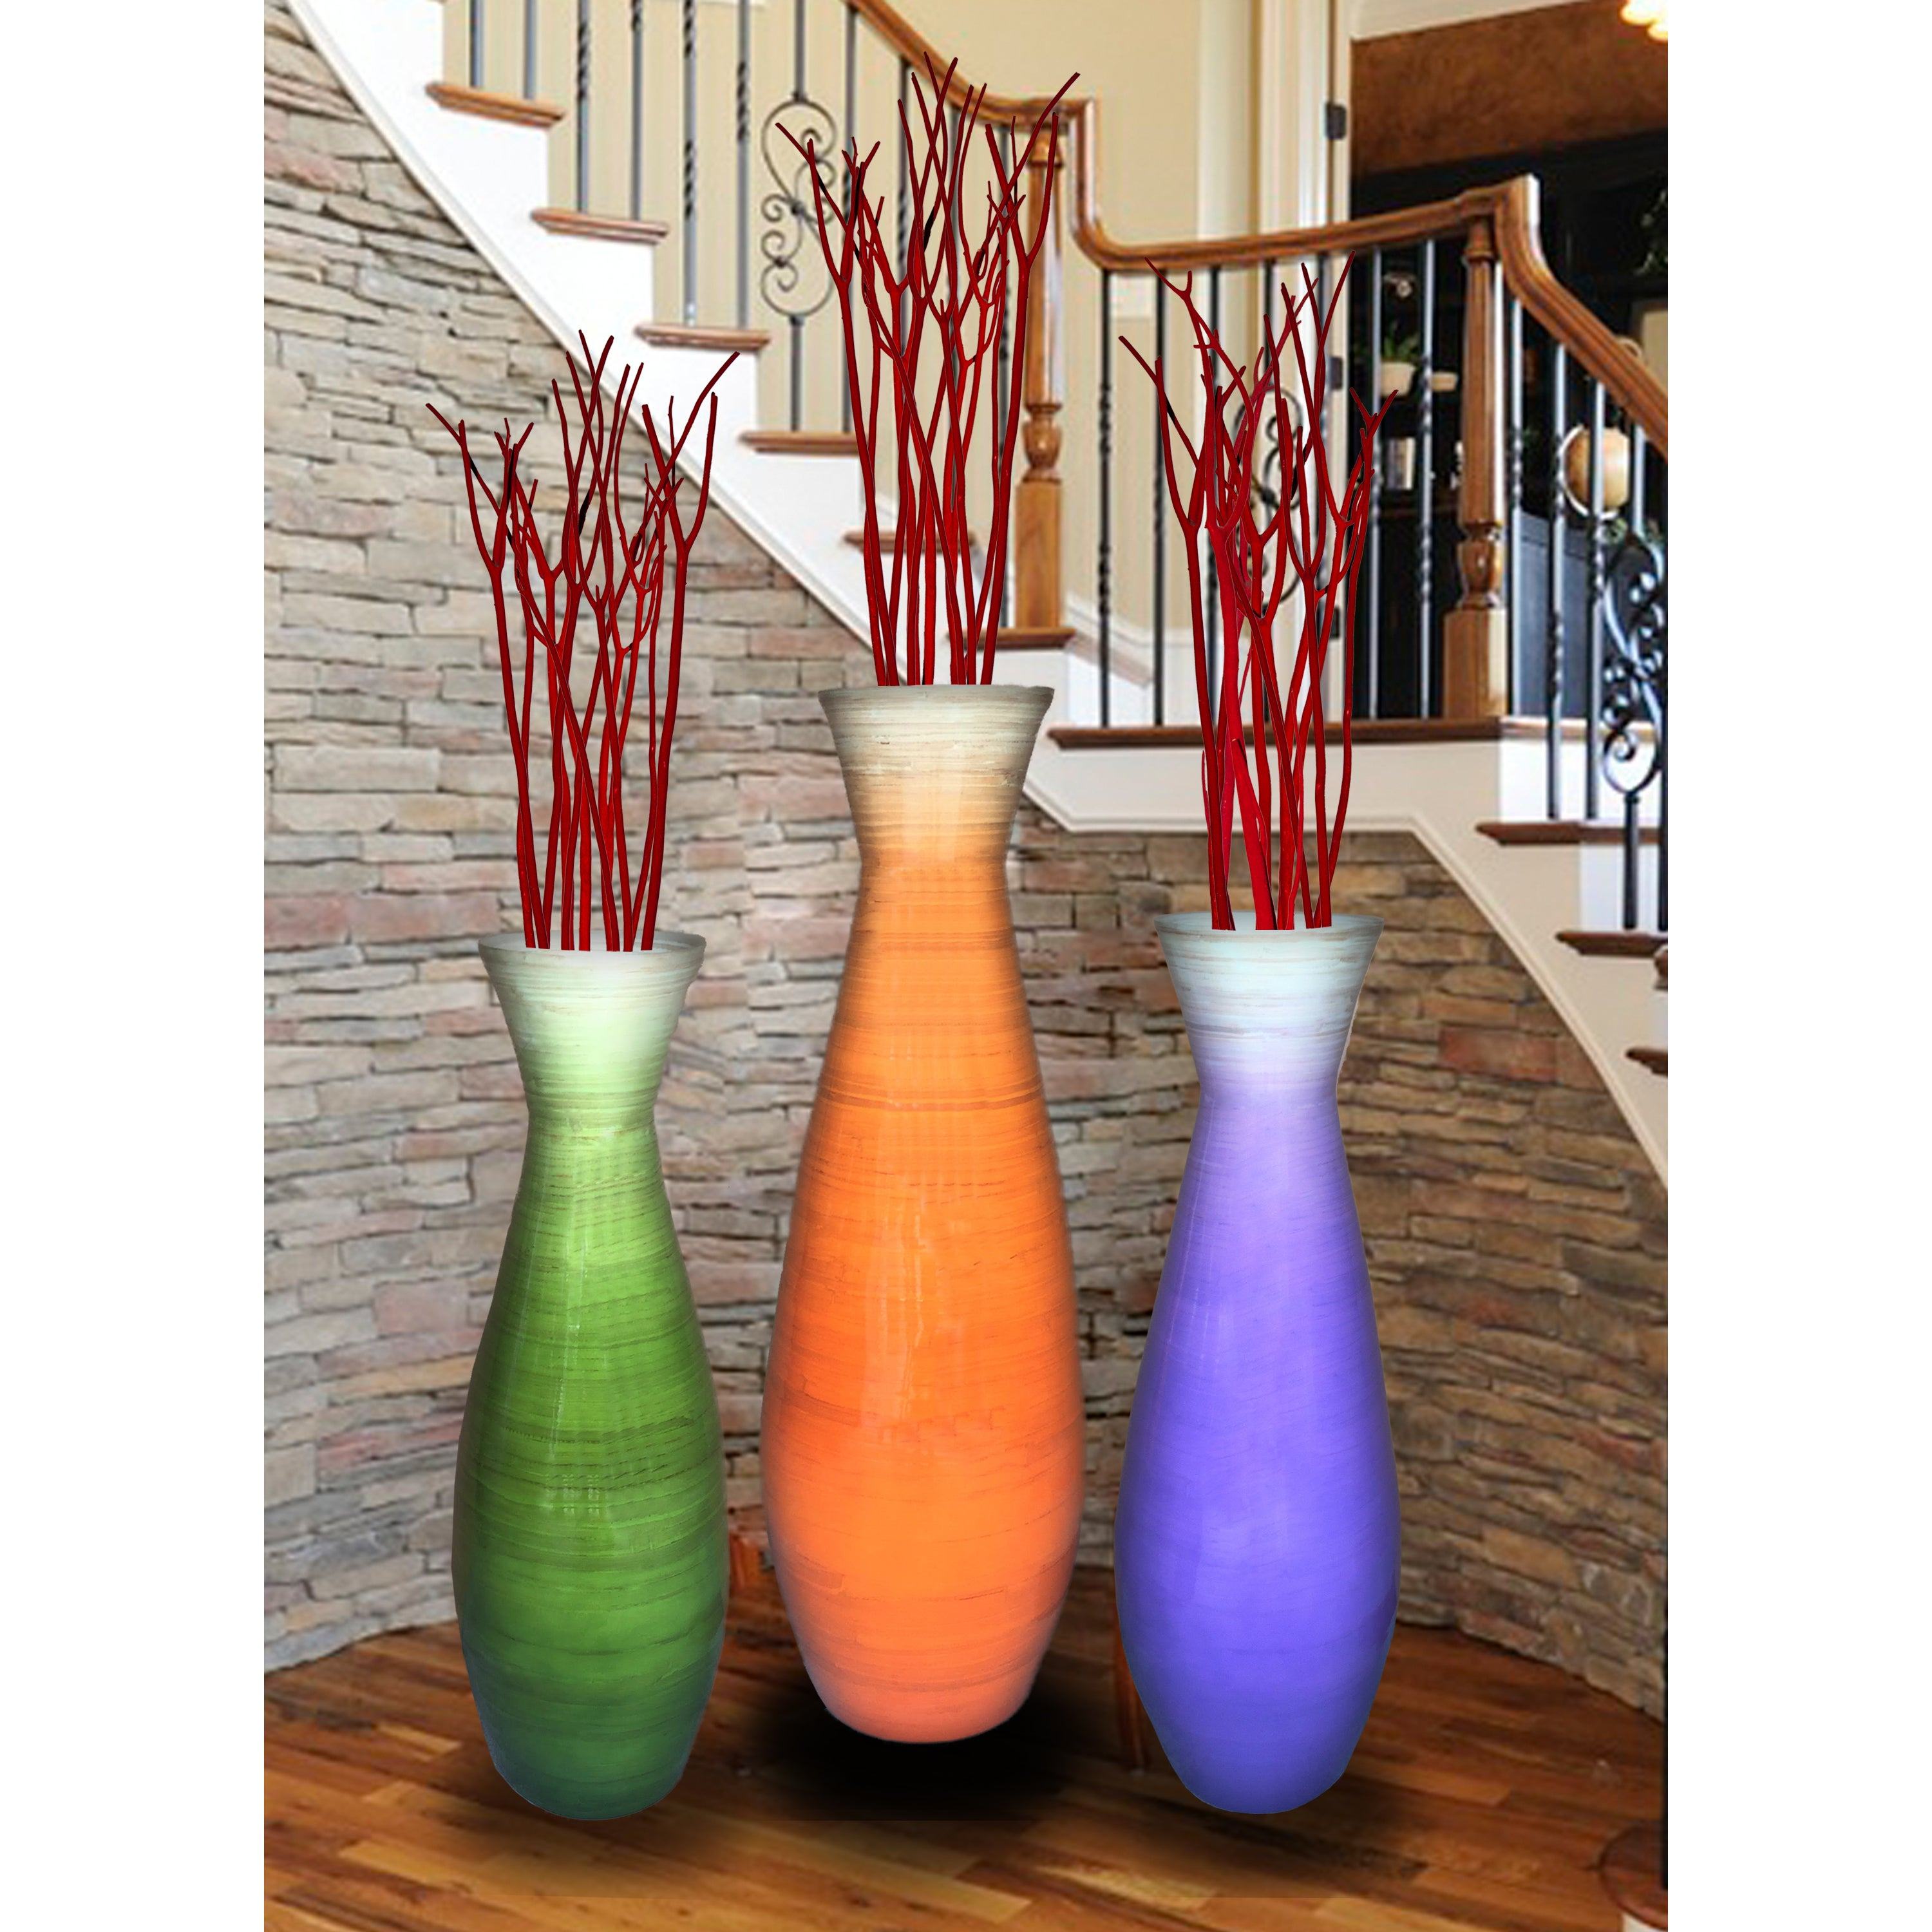 Set Of 3 Tall Bamboo Floor Vases